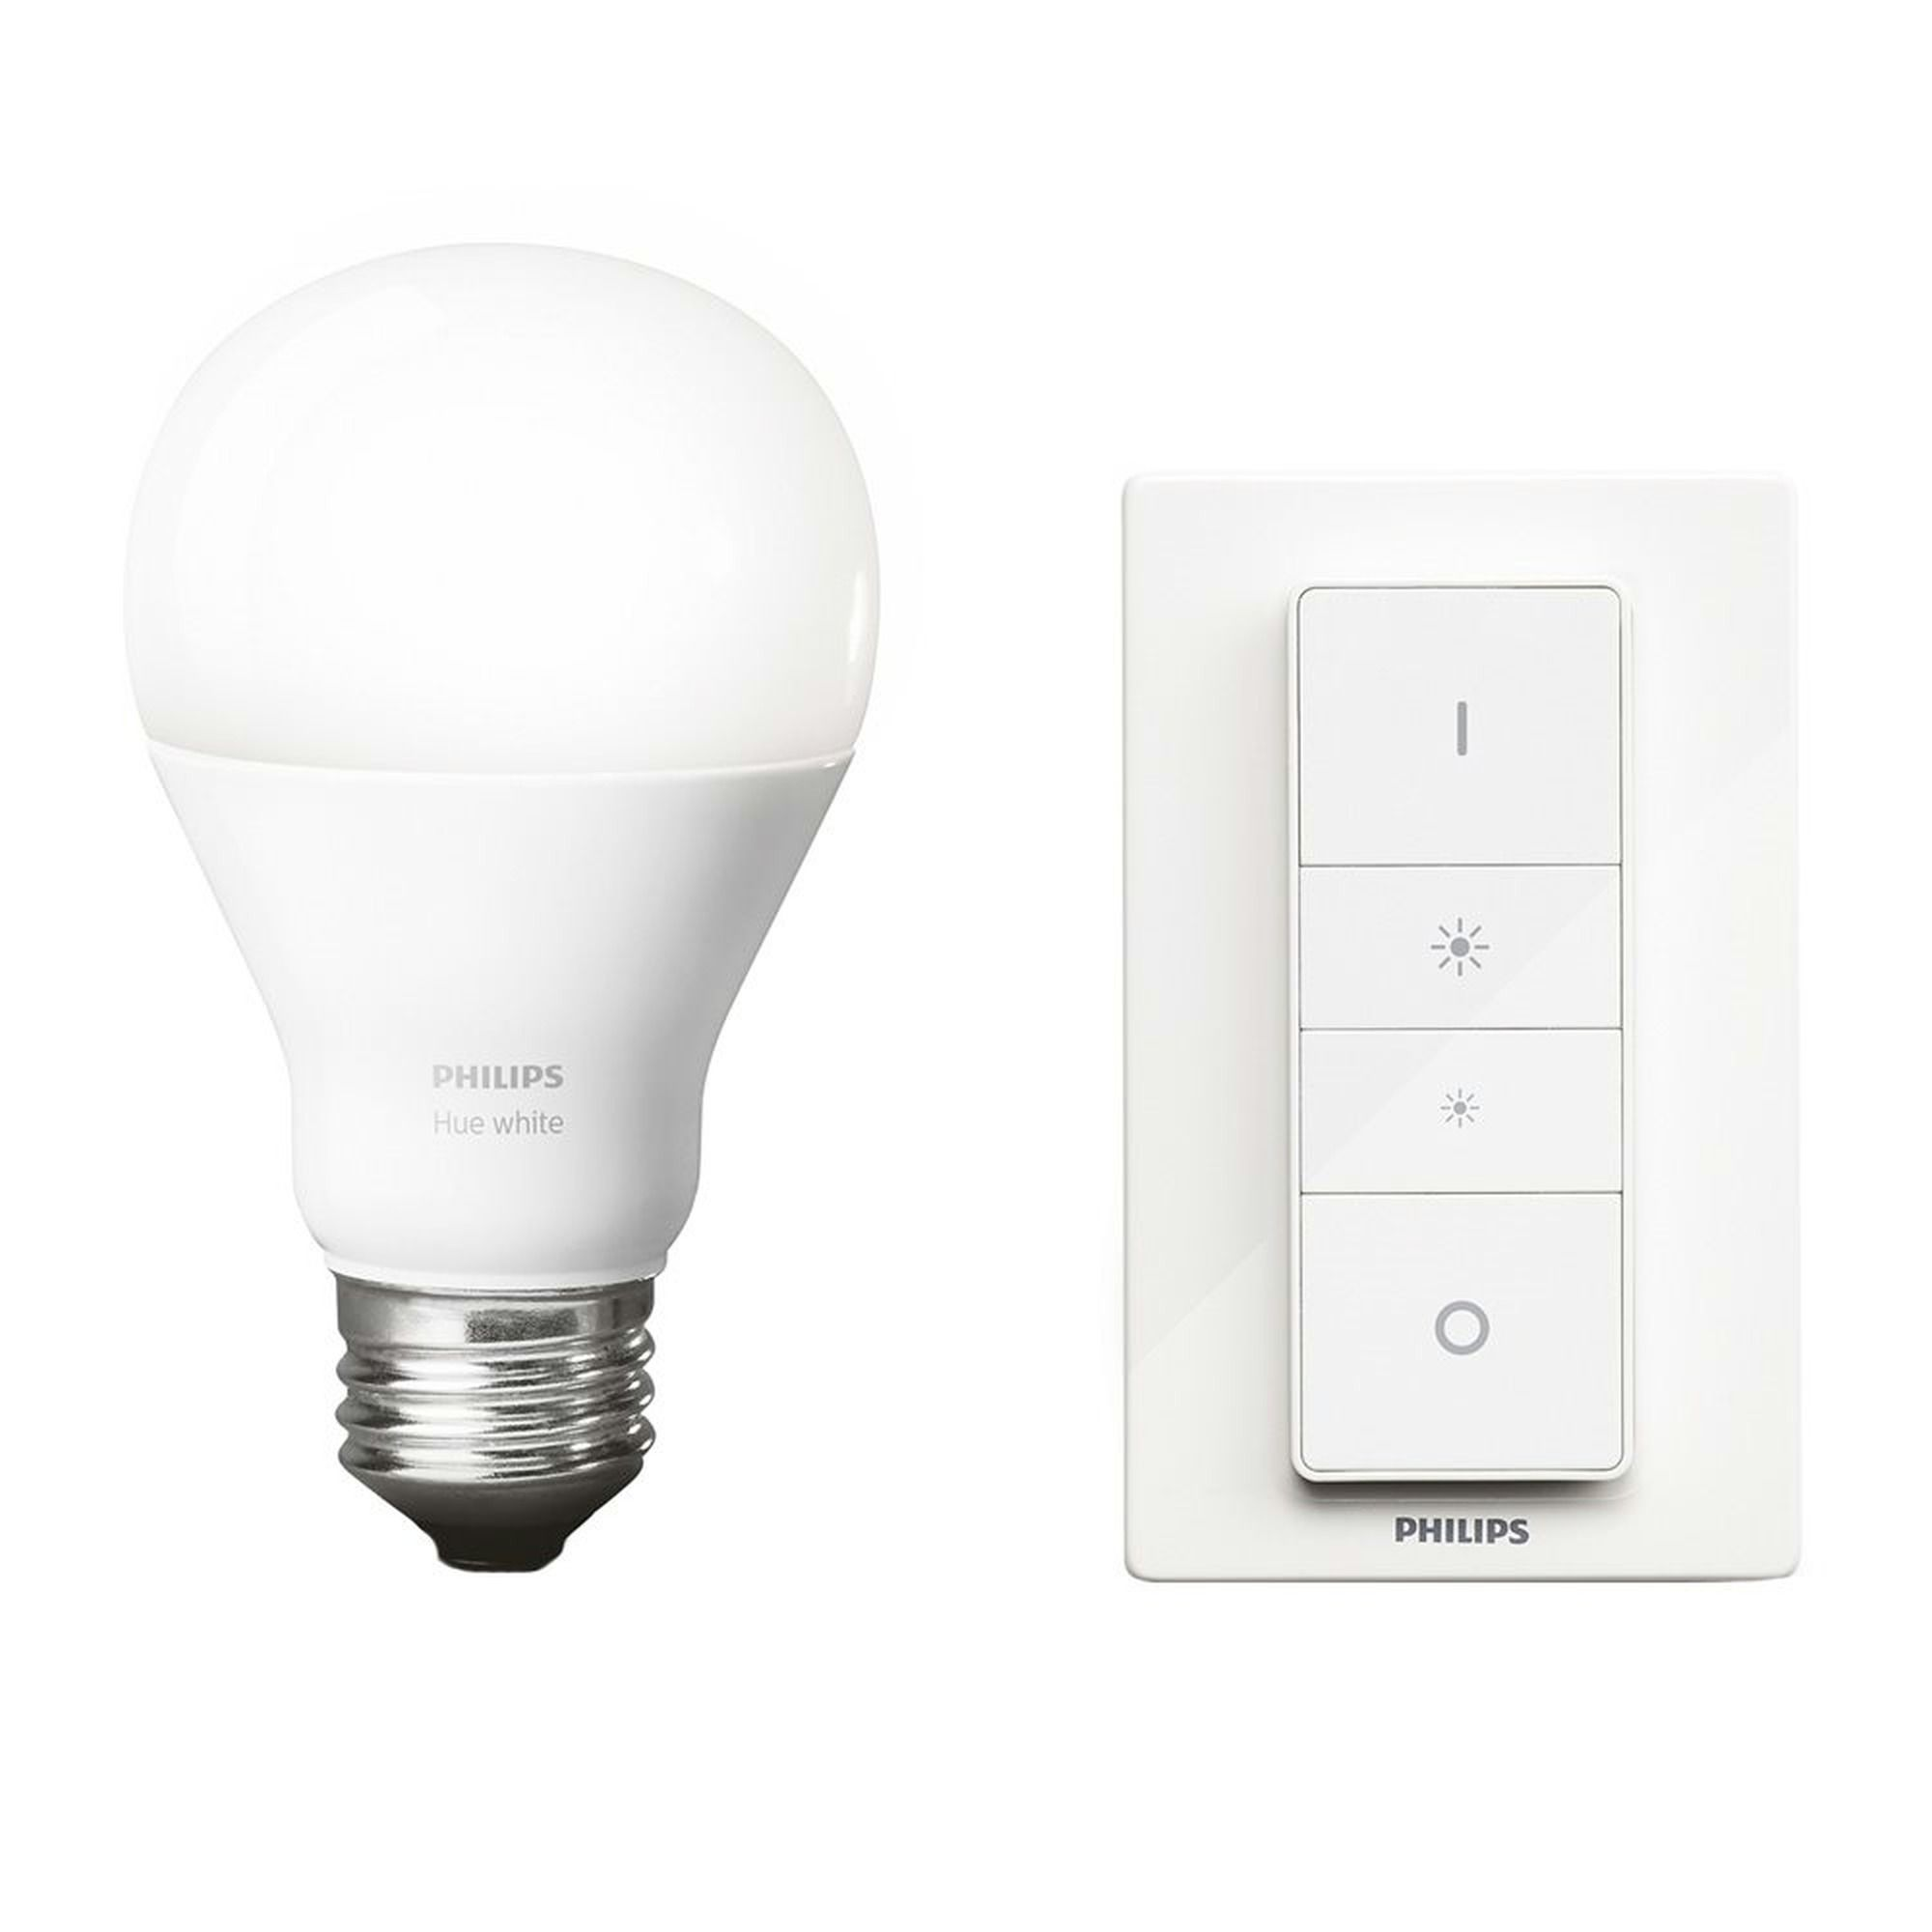 Led Verlichting Coolblue Philips Hue Draadloze Dimmer Met Ledlamp Peer E27 9 5w In